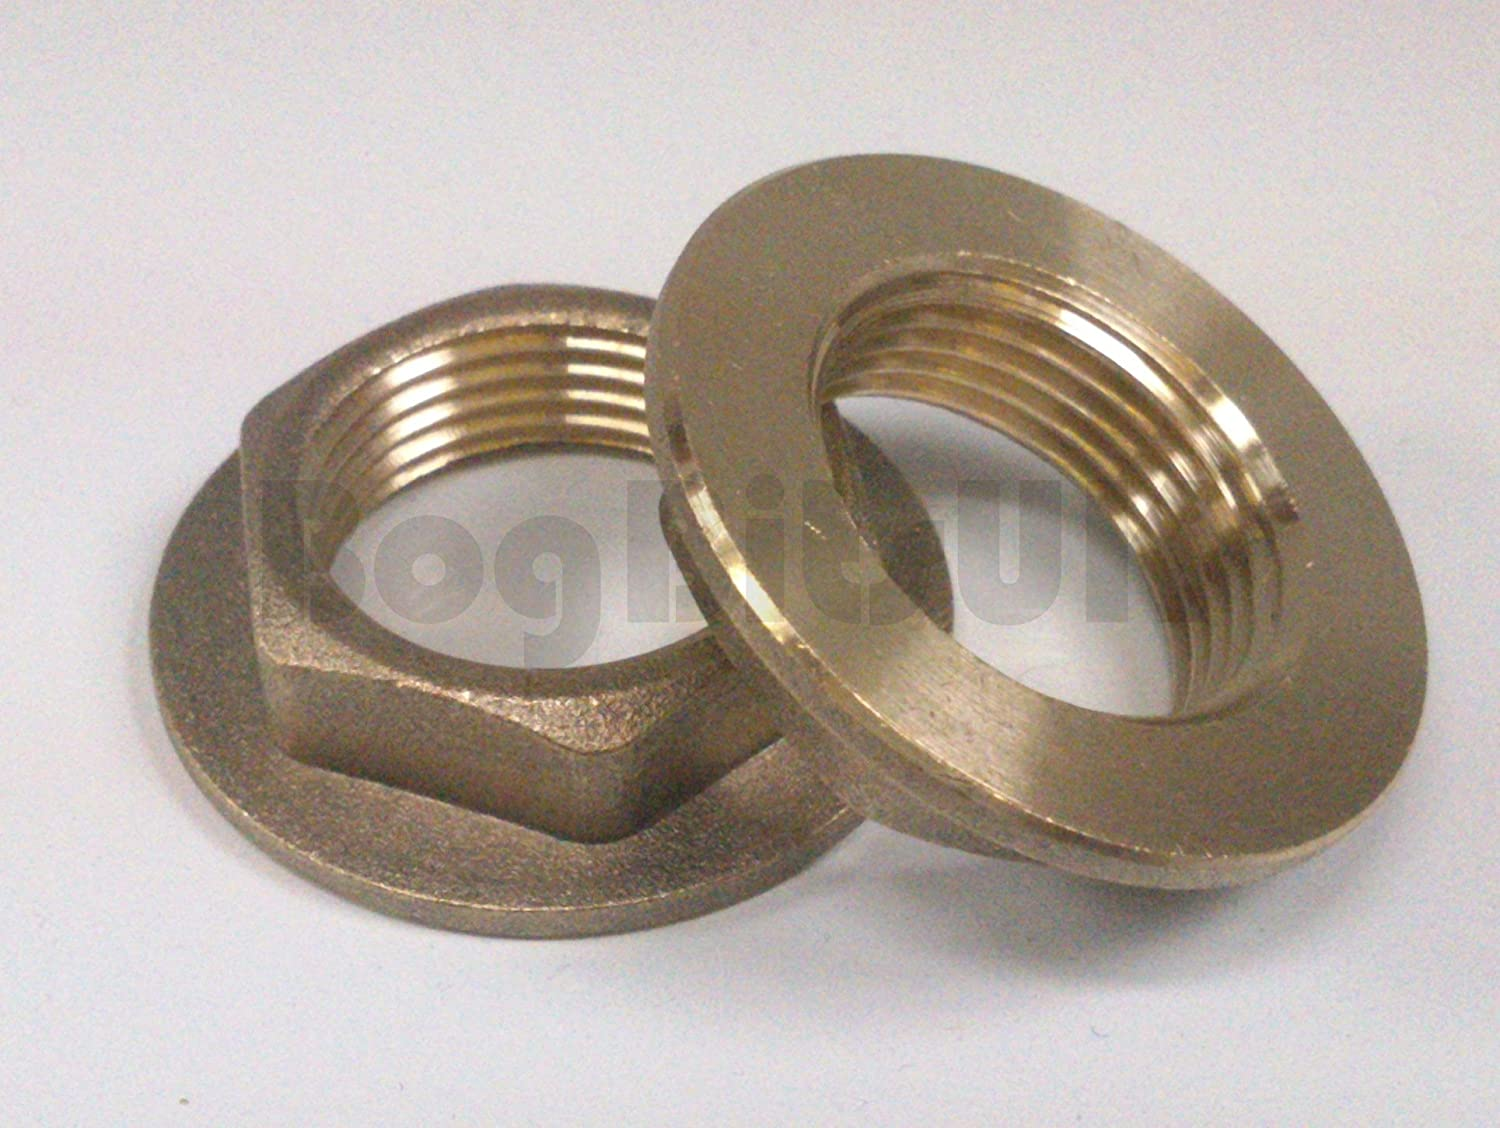 Brass Flanged Backnut 1/2 - 1 Pair by Generic